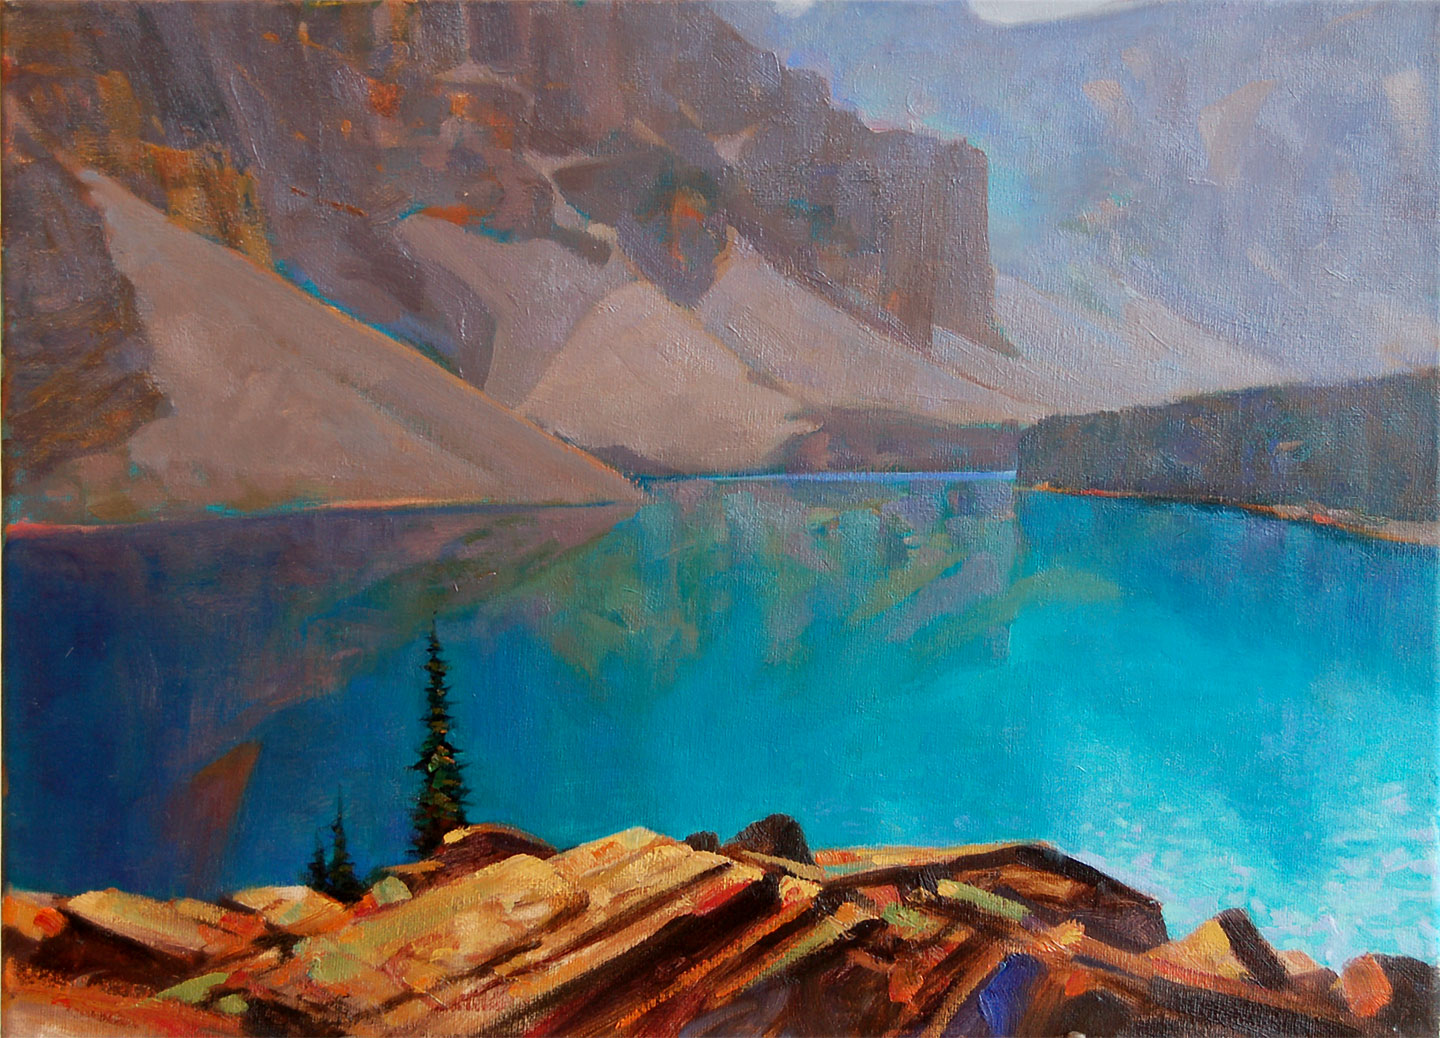 'Above Moraine' Banff National Park  16 X 20 in. oil on canvas